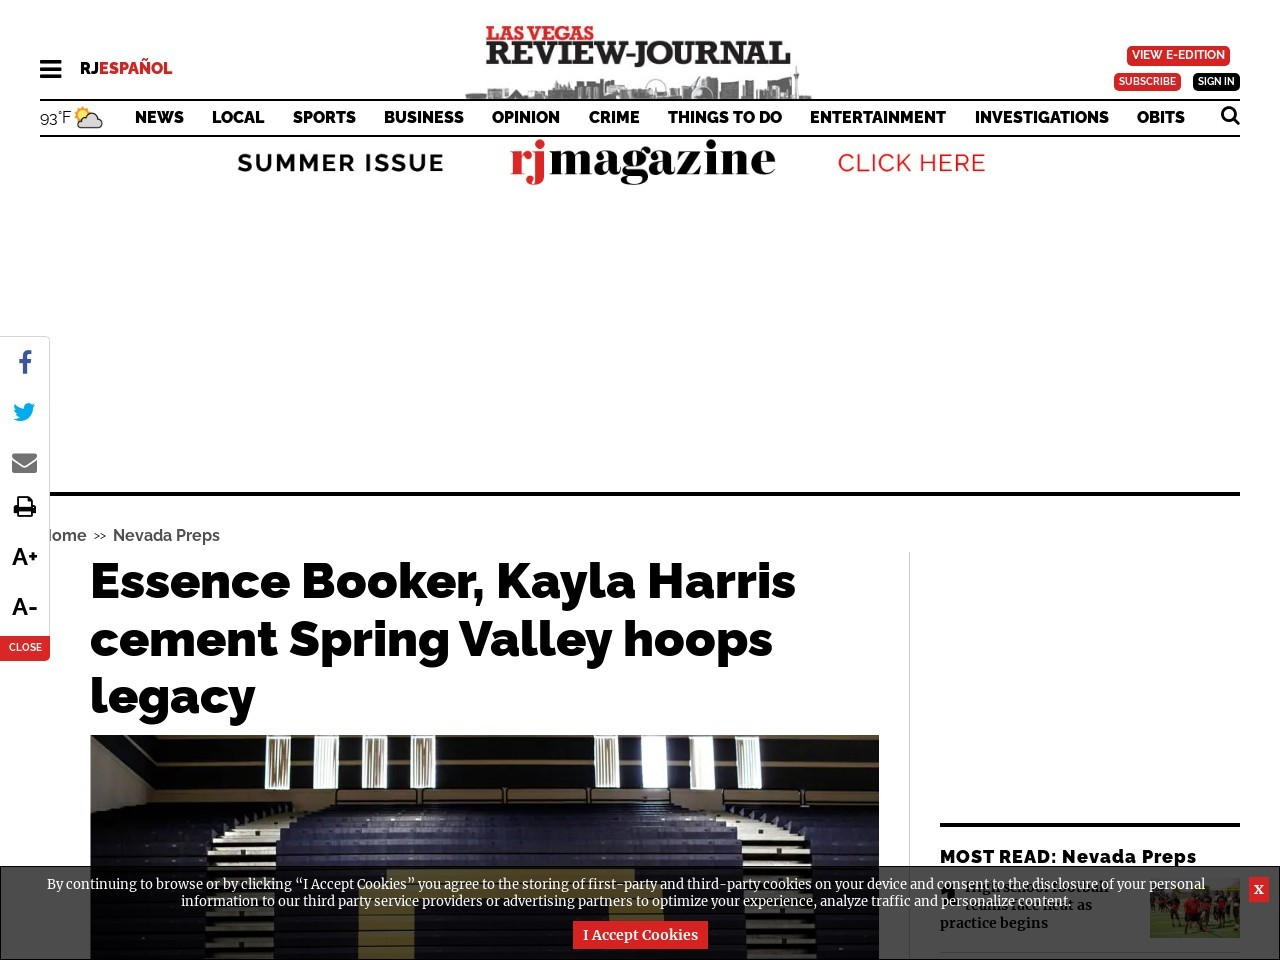 Essence Booker, Kayla Harris cement Spring Valley hoops legacy